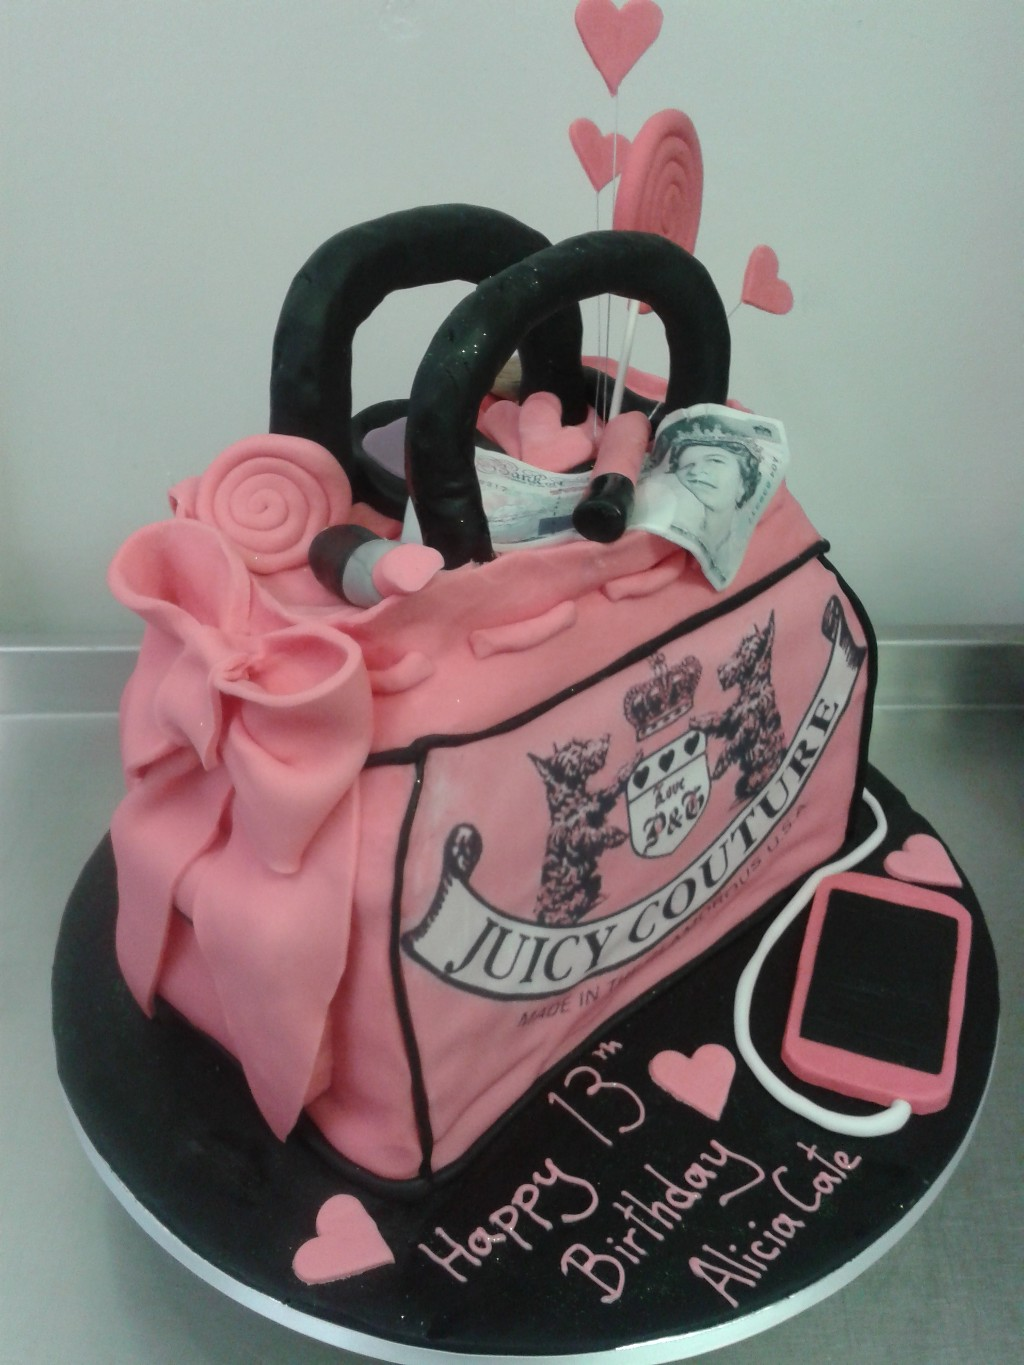 Juicy Couture Girly Handbag 13th Birthday Cake Crumbs Cake Shop